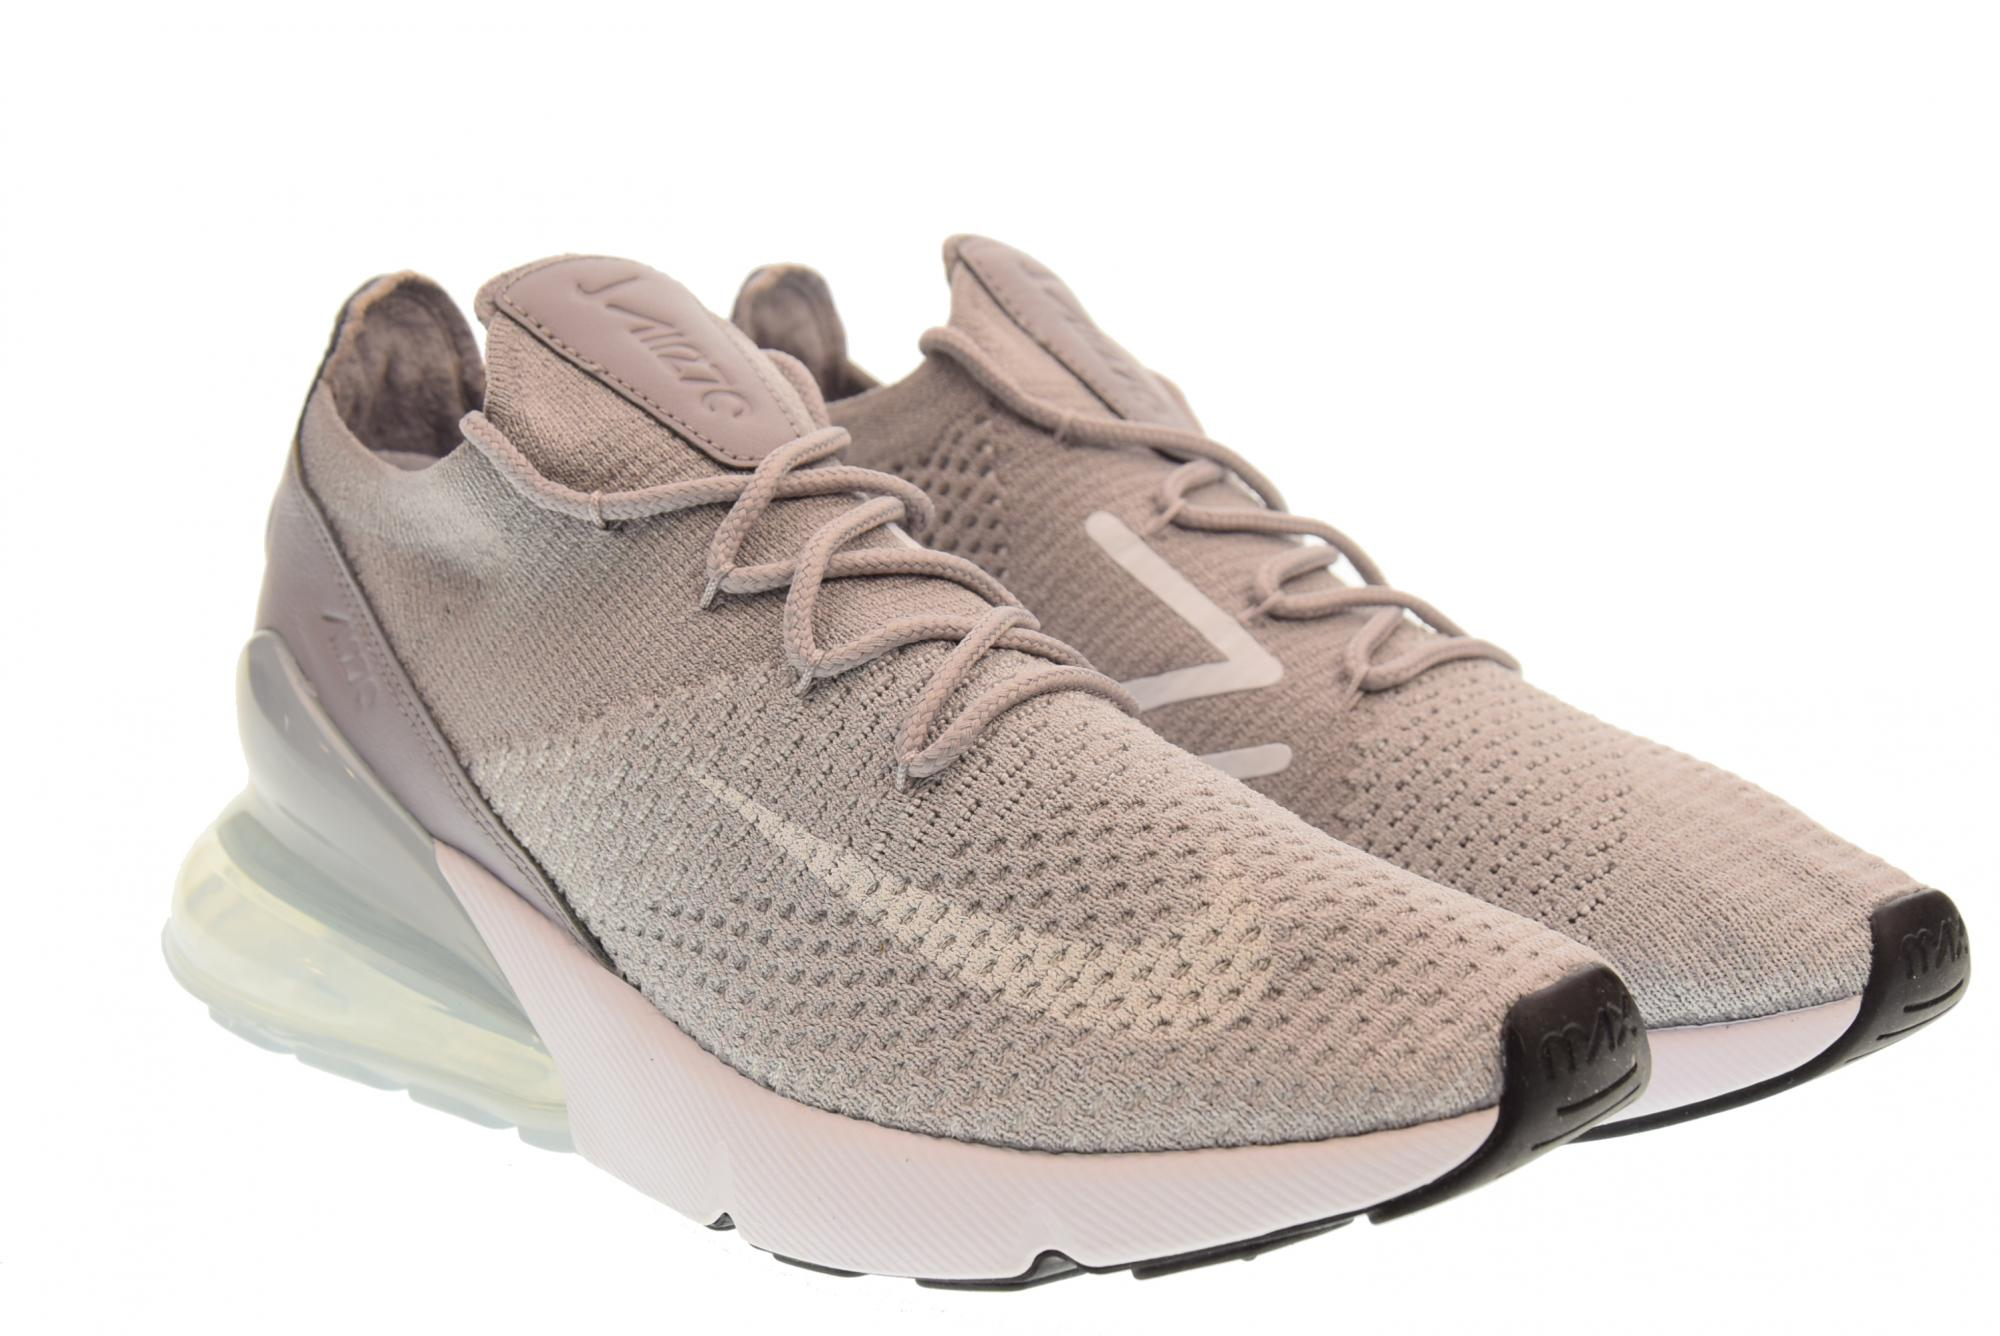 sports shoes fbaeb d7b56 Nike A18f chaussures femme baskets W AIR MAX 270 FLYKNIT AH6803 002